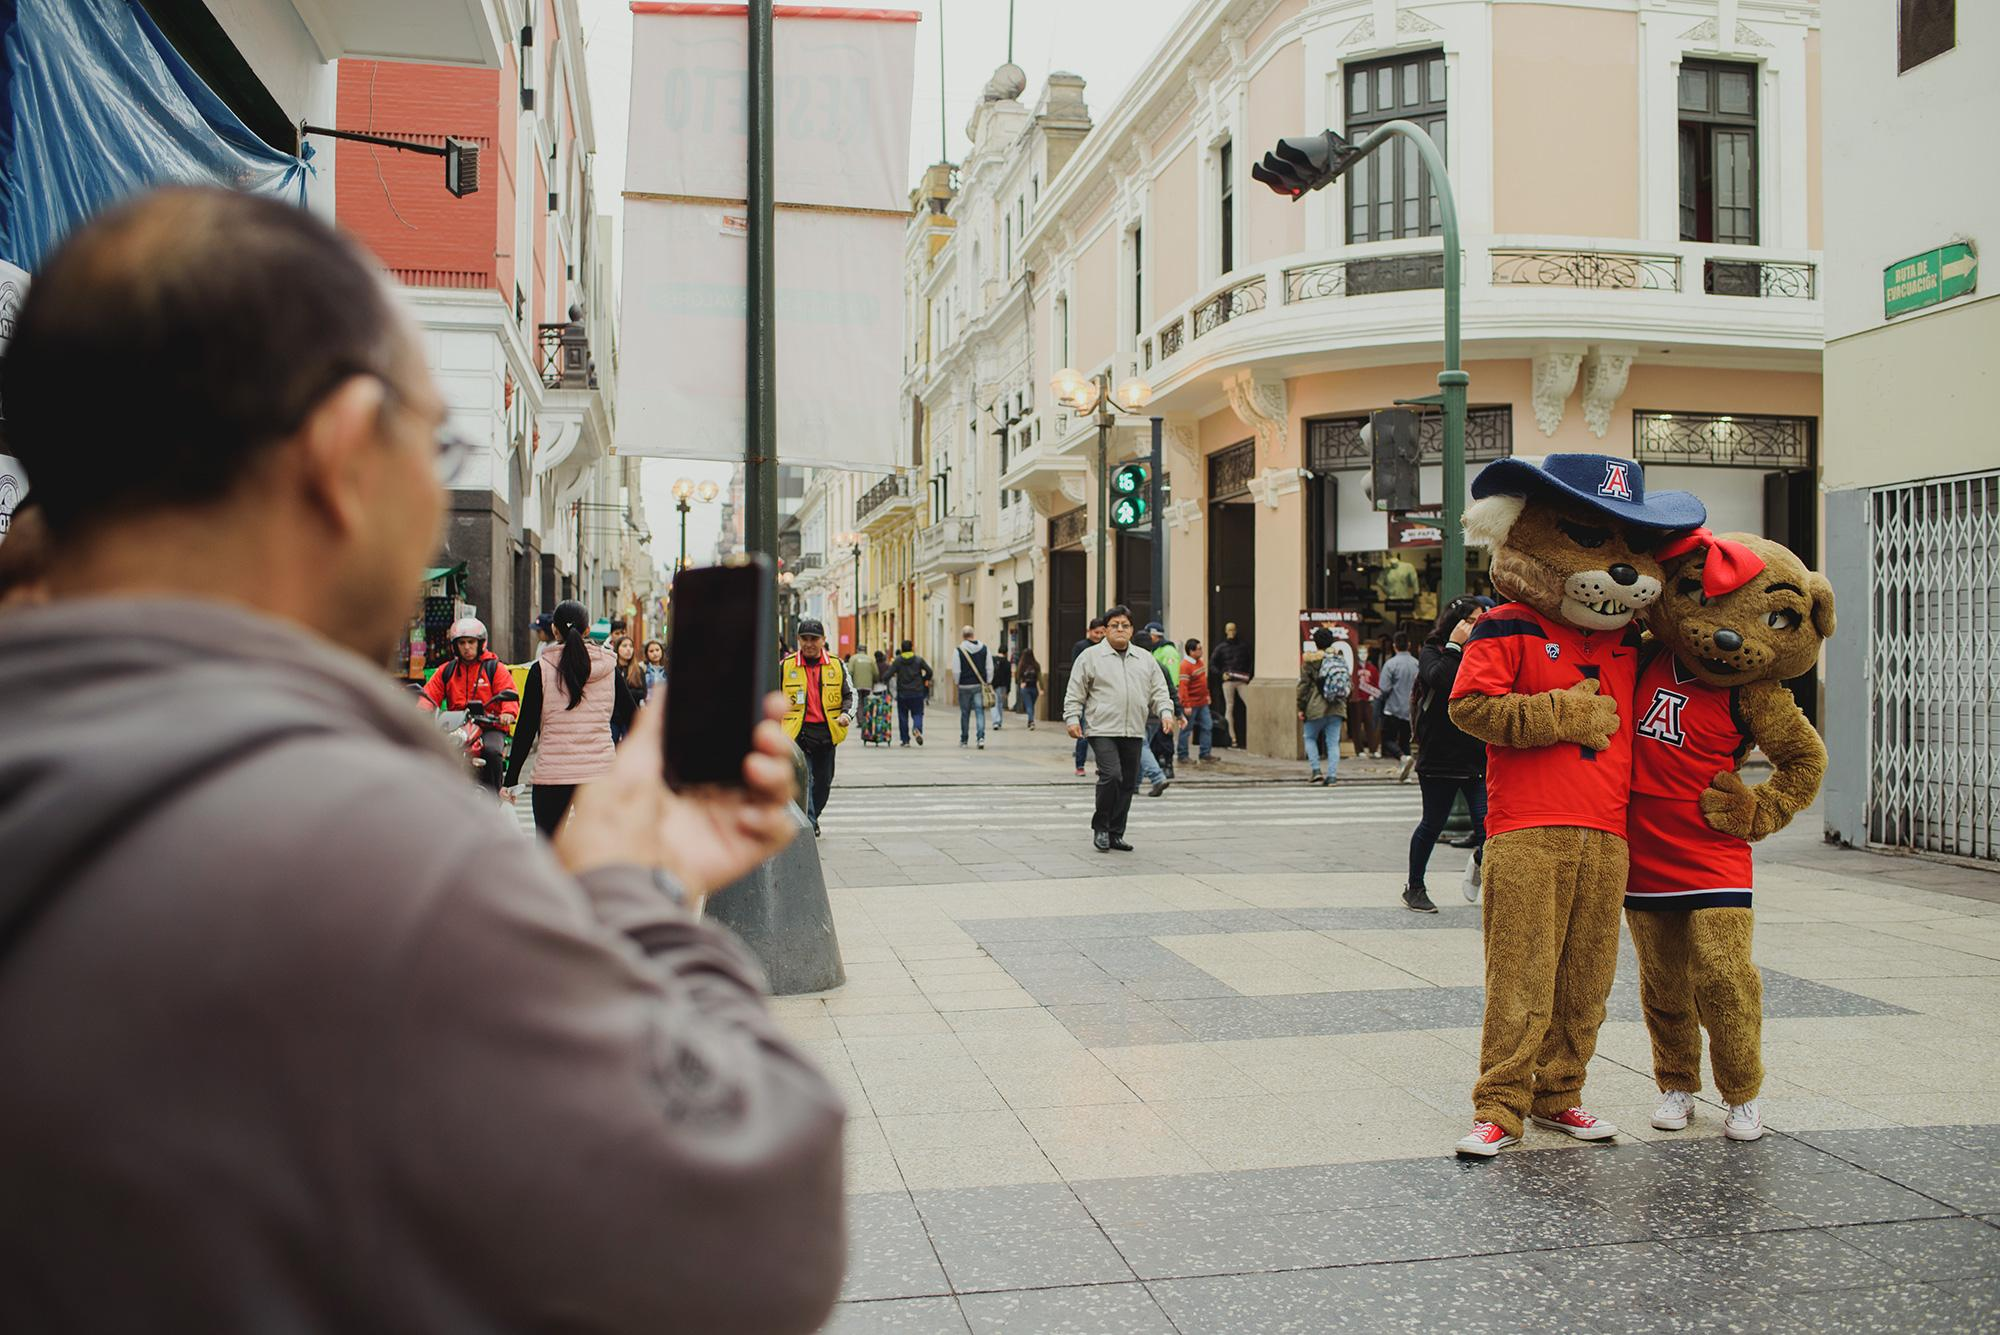 While visiting Peru for the micro-campus launch, Wilber and Wilma attracted a lot of attention as they strolled the streets of Lima.